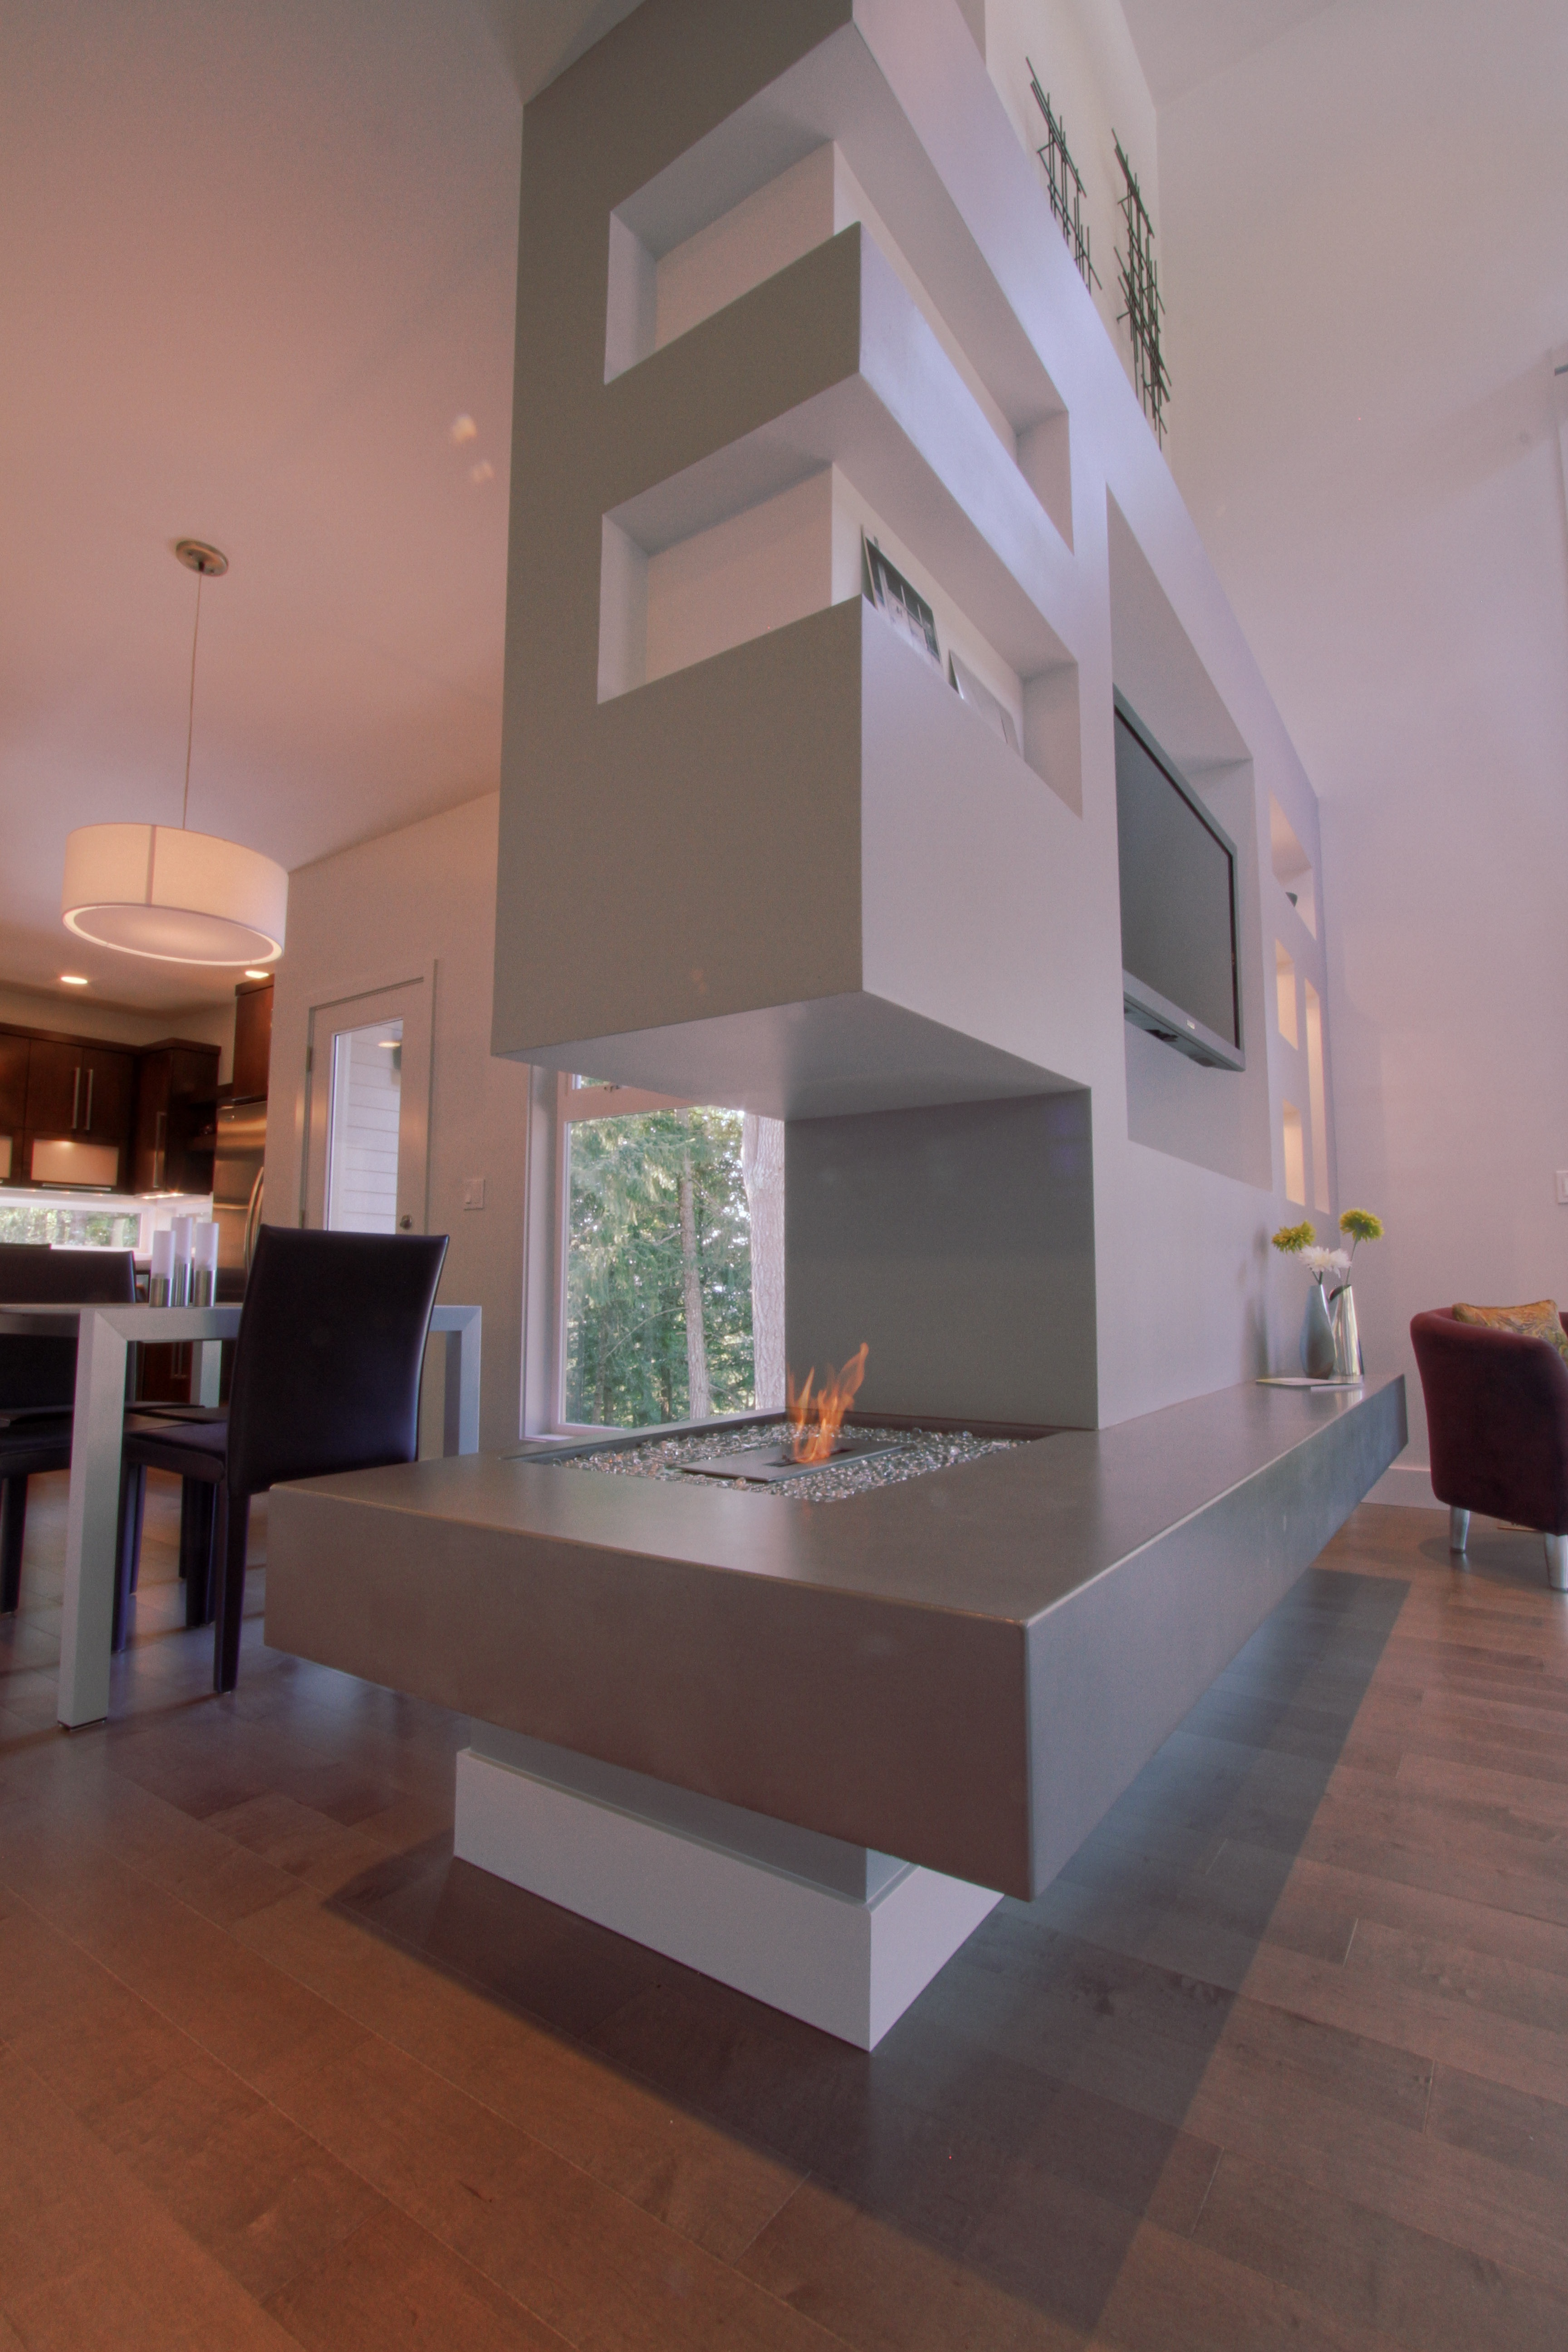 Modern Gray Structural Room Divider With Fireplace And Shelving (Image 9 of 14)